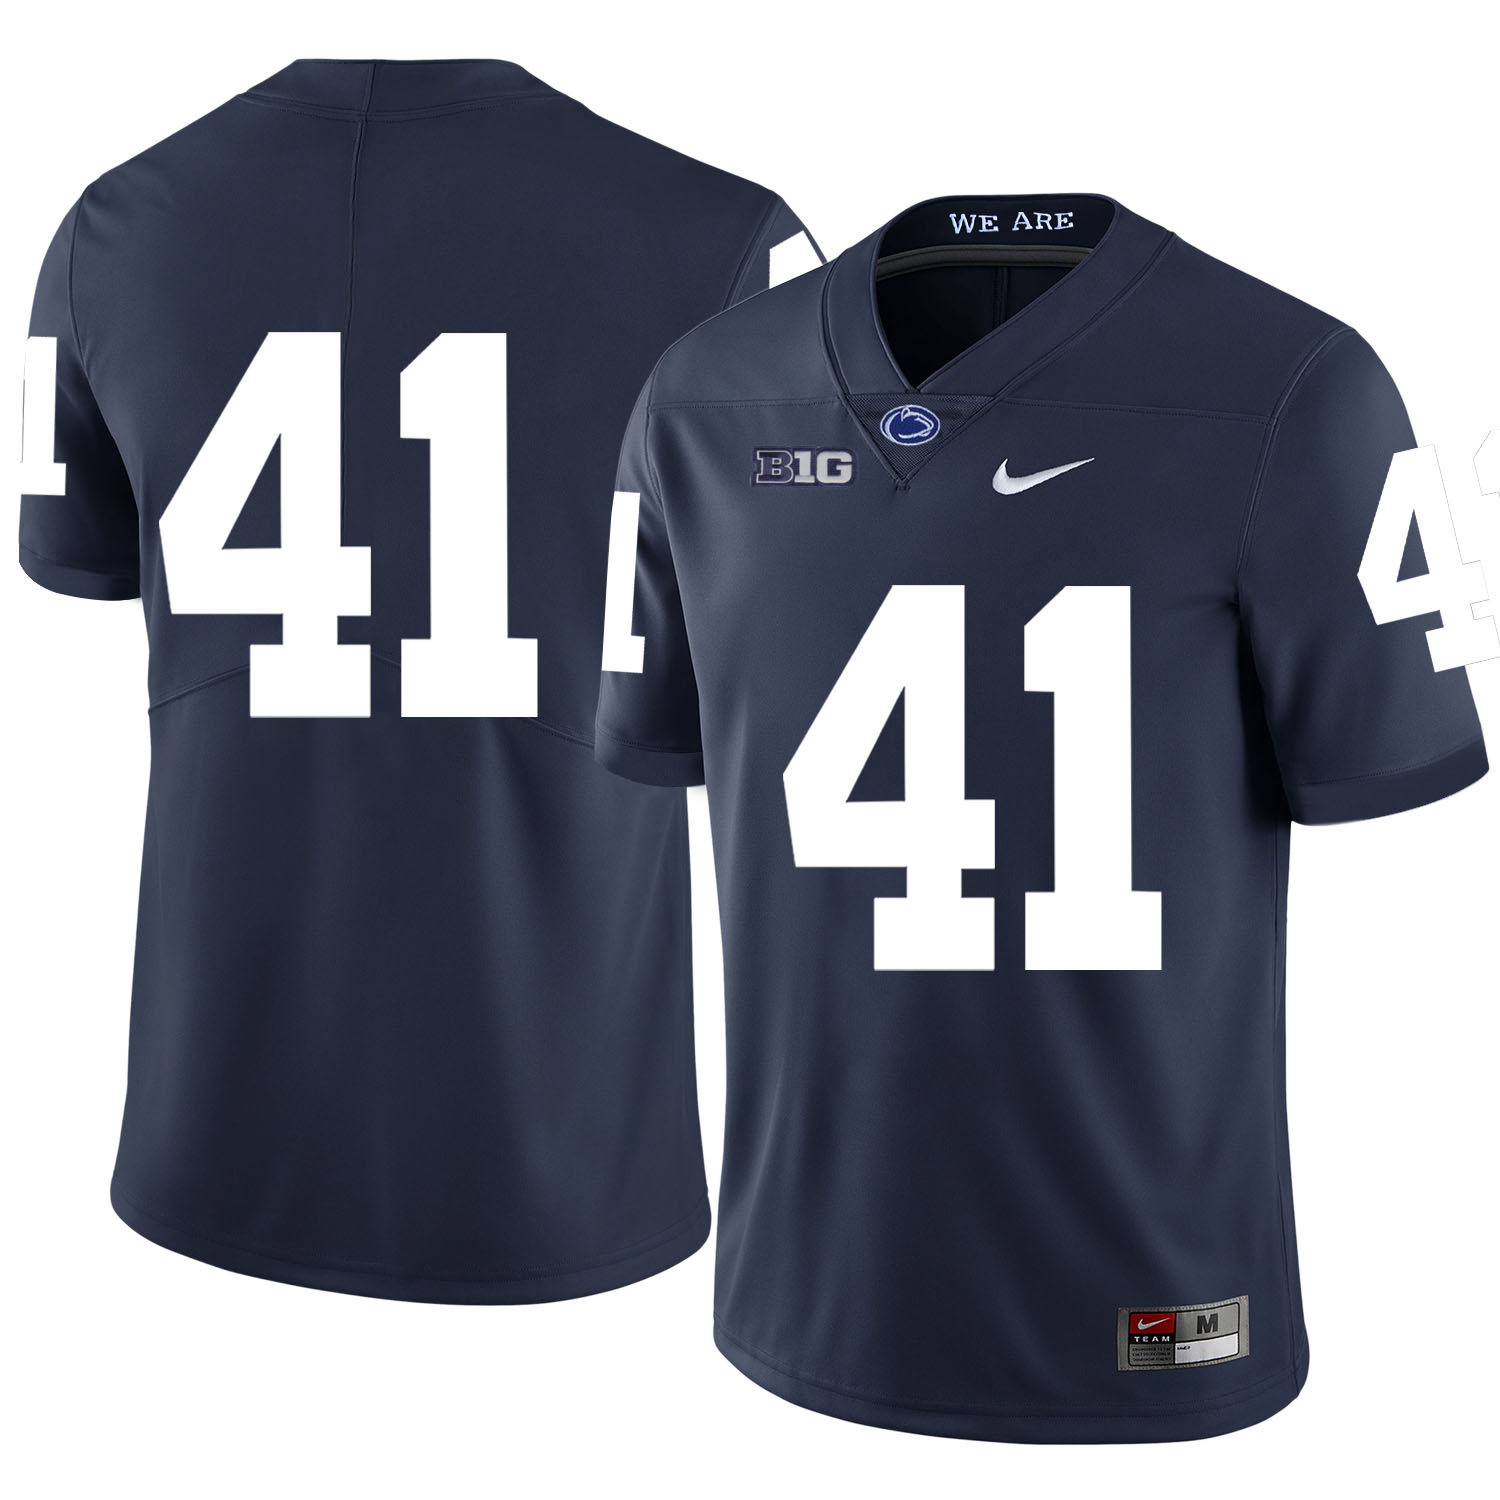 Penn State Nittany Lions 41 Parker Cothren Navy Nike College Football Jersey